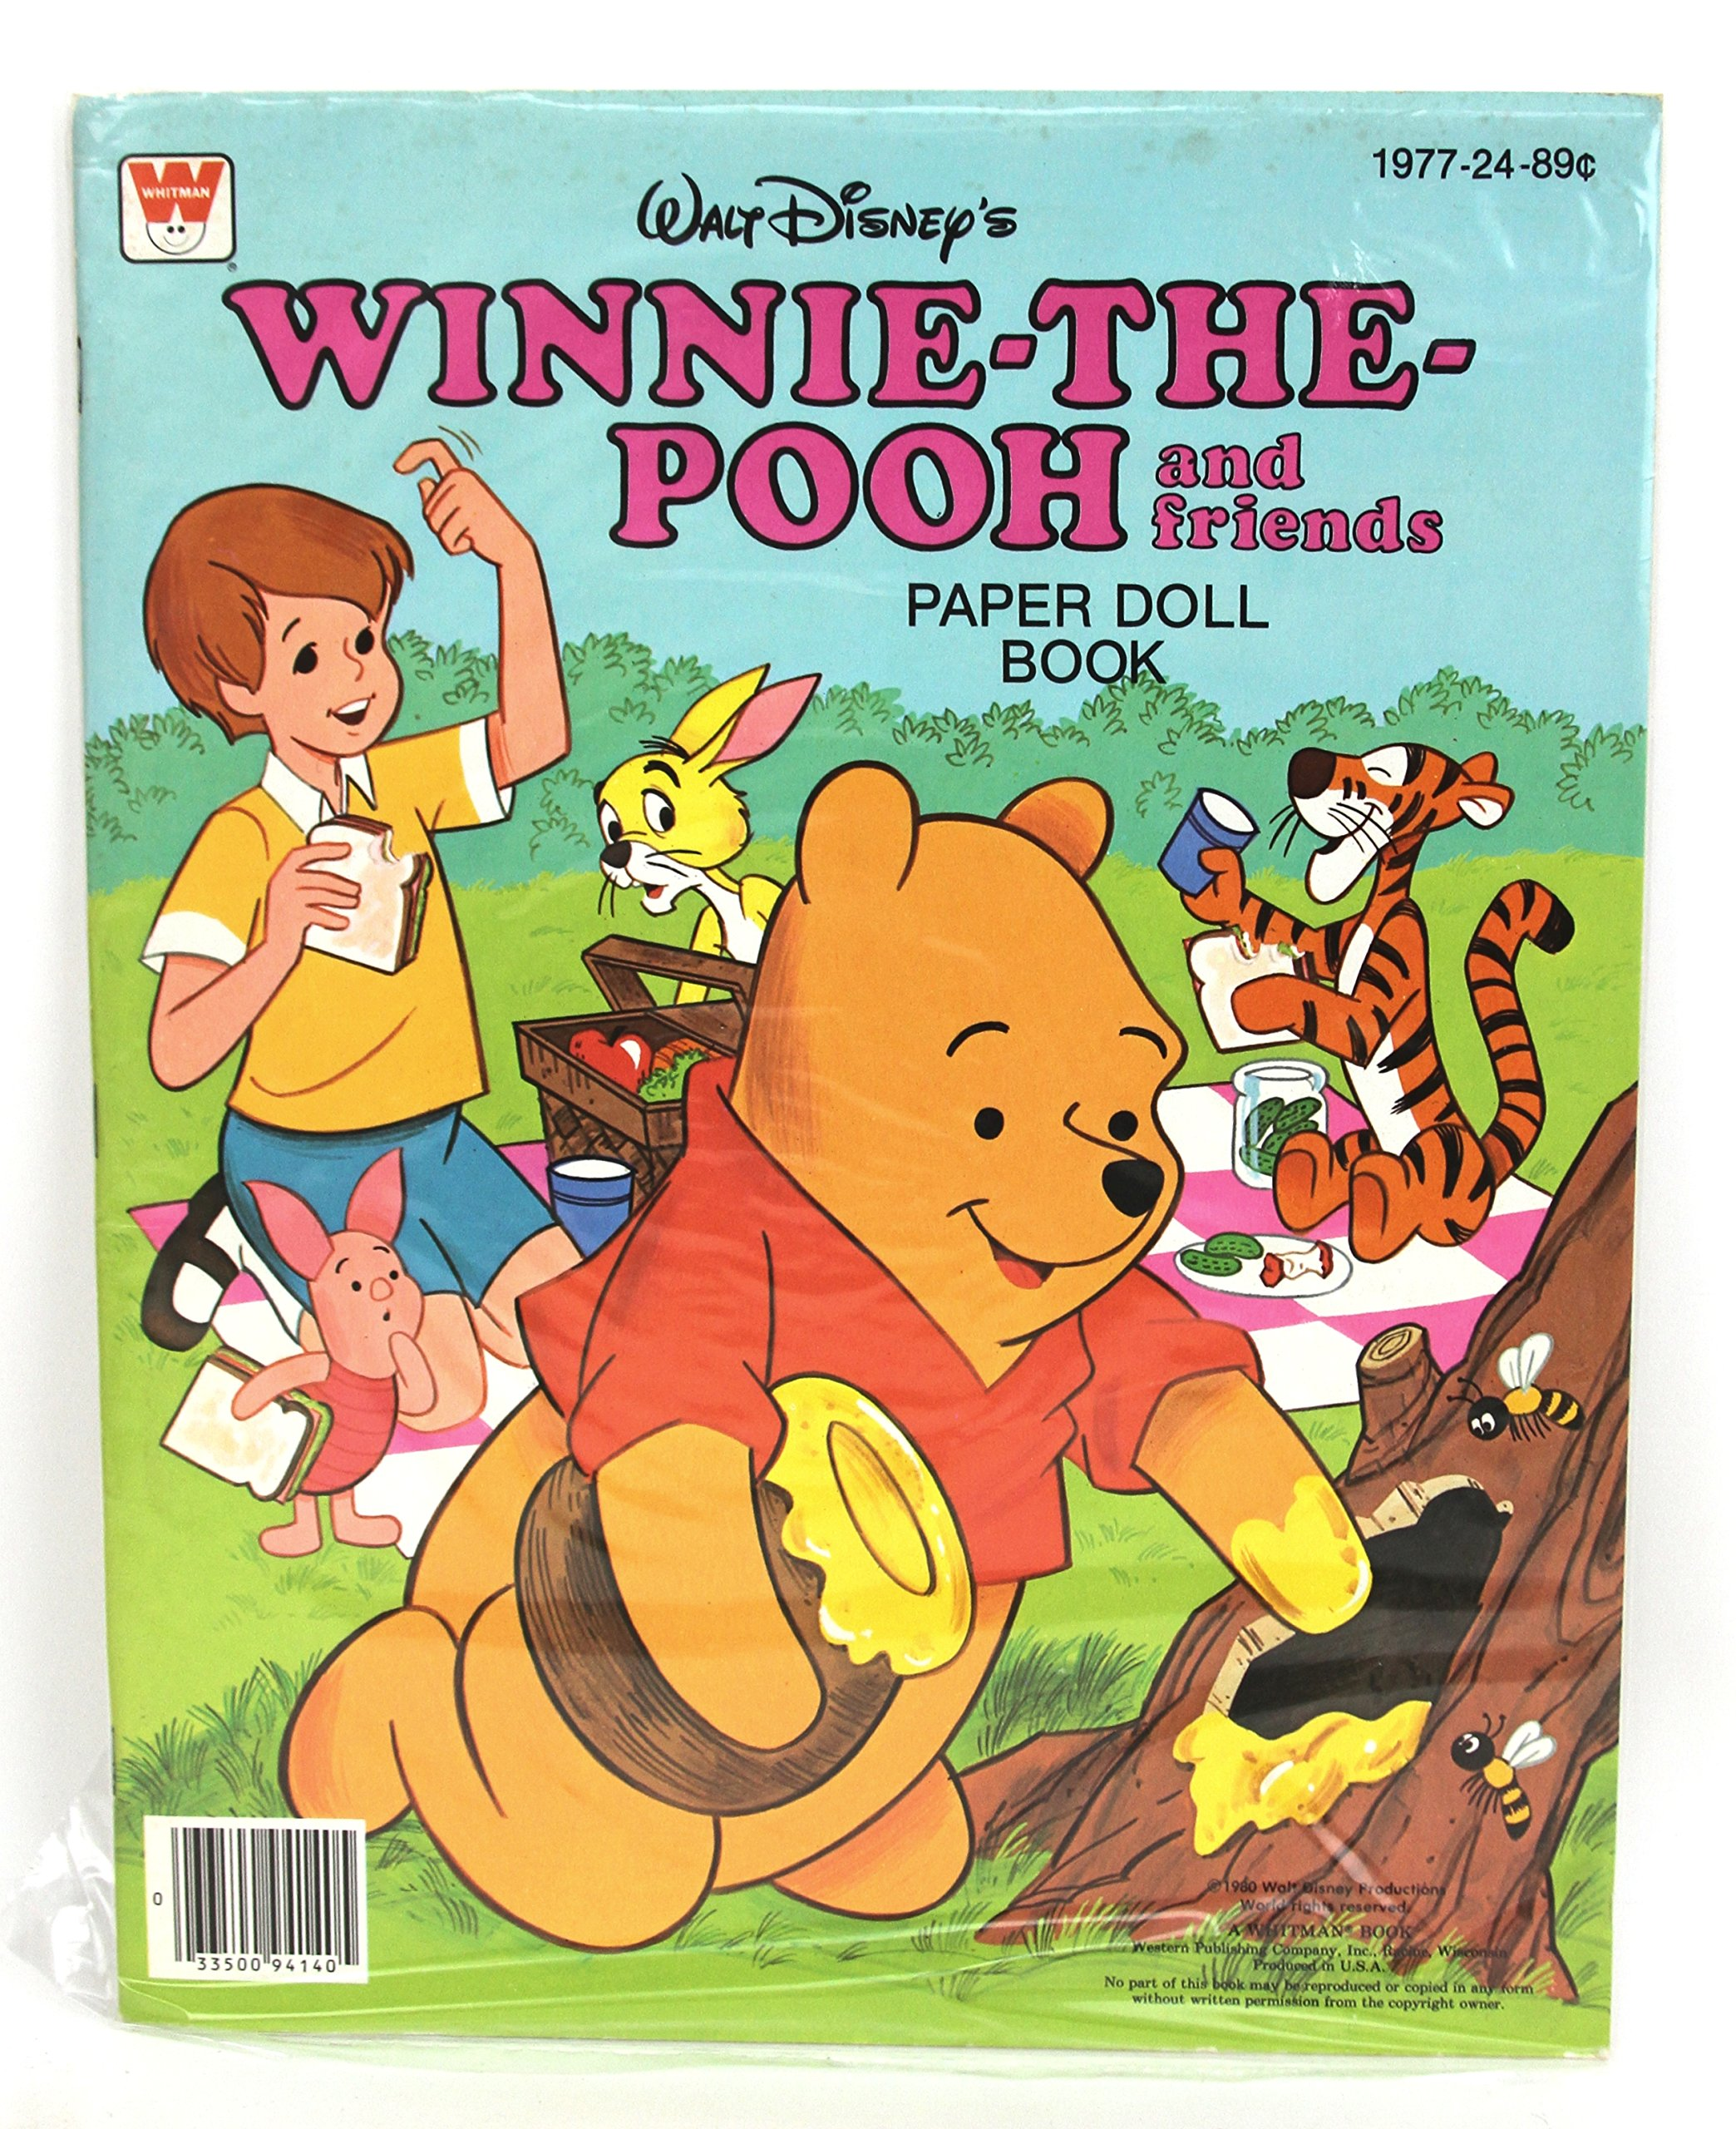 91d5455bc126 WALT DISNEY S WINNIE-THE-POOH AND FRIENDS PAPER DOLL BOOK  PAPERDOLL   Paperback – 1980